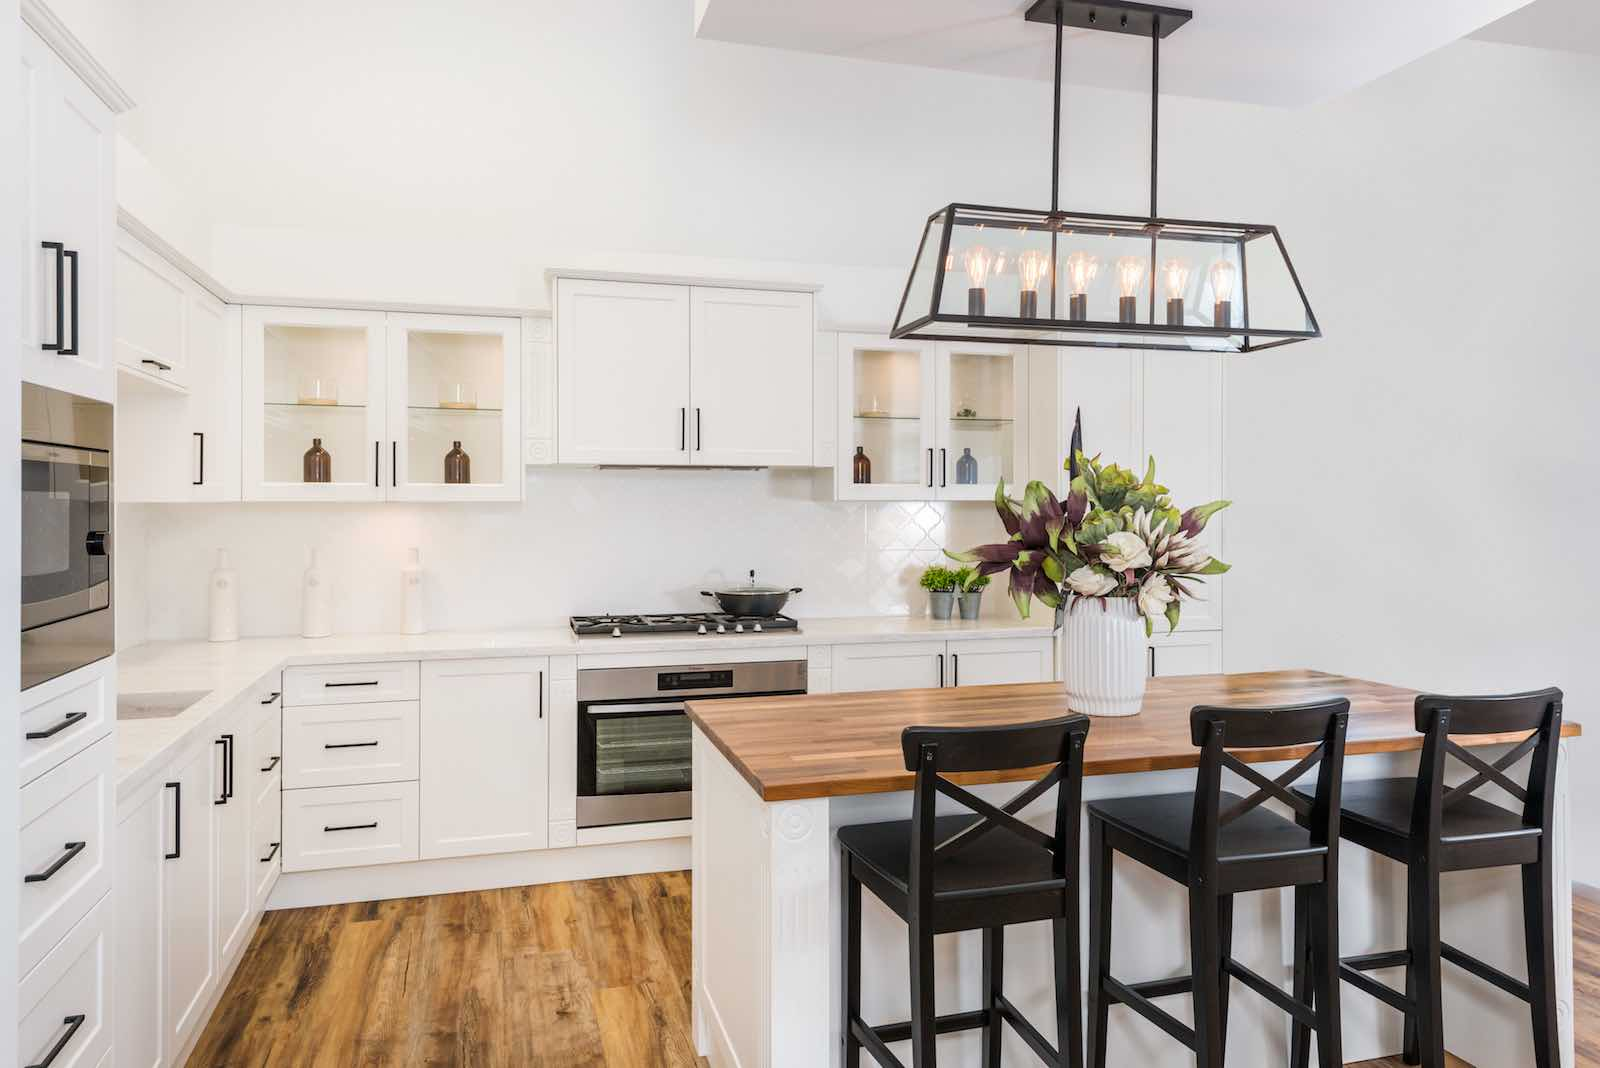 shaker style kitchen booths for sale brisbane kitchens connection here is a that you can see on display at our north lakes design showroom